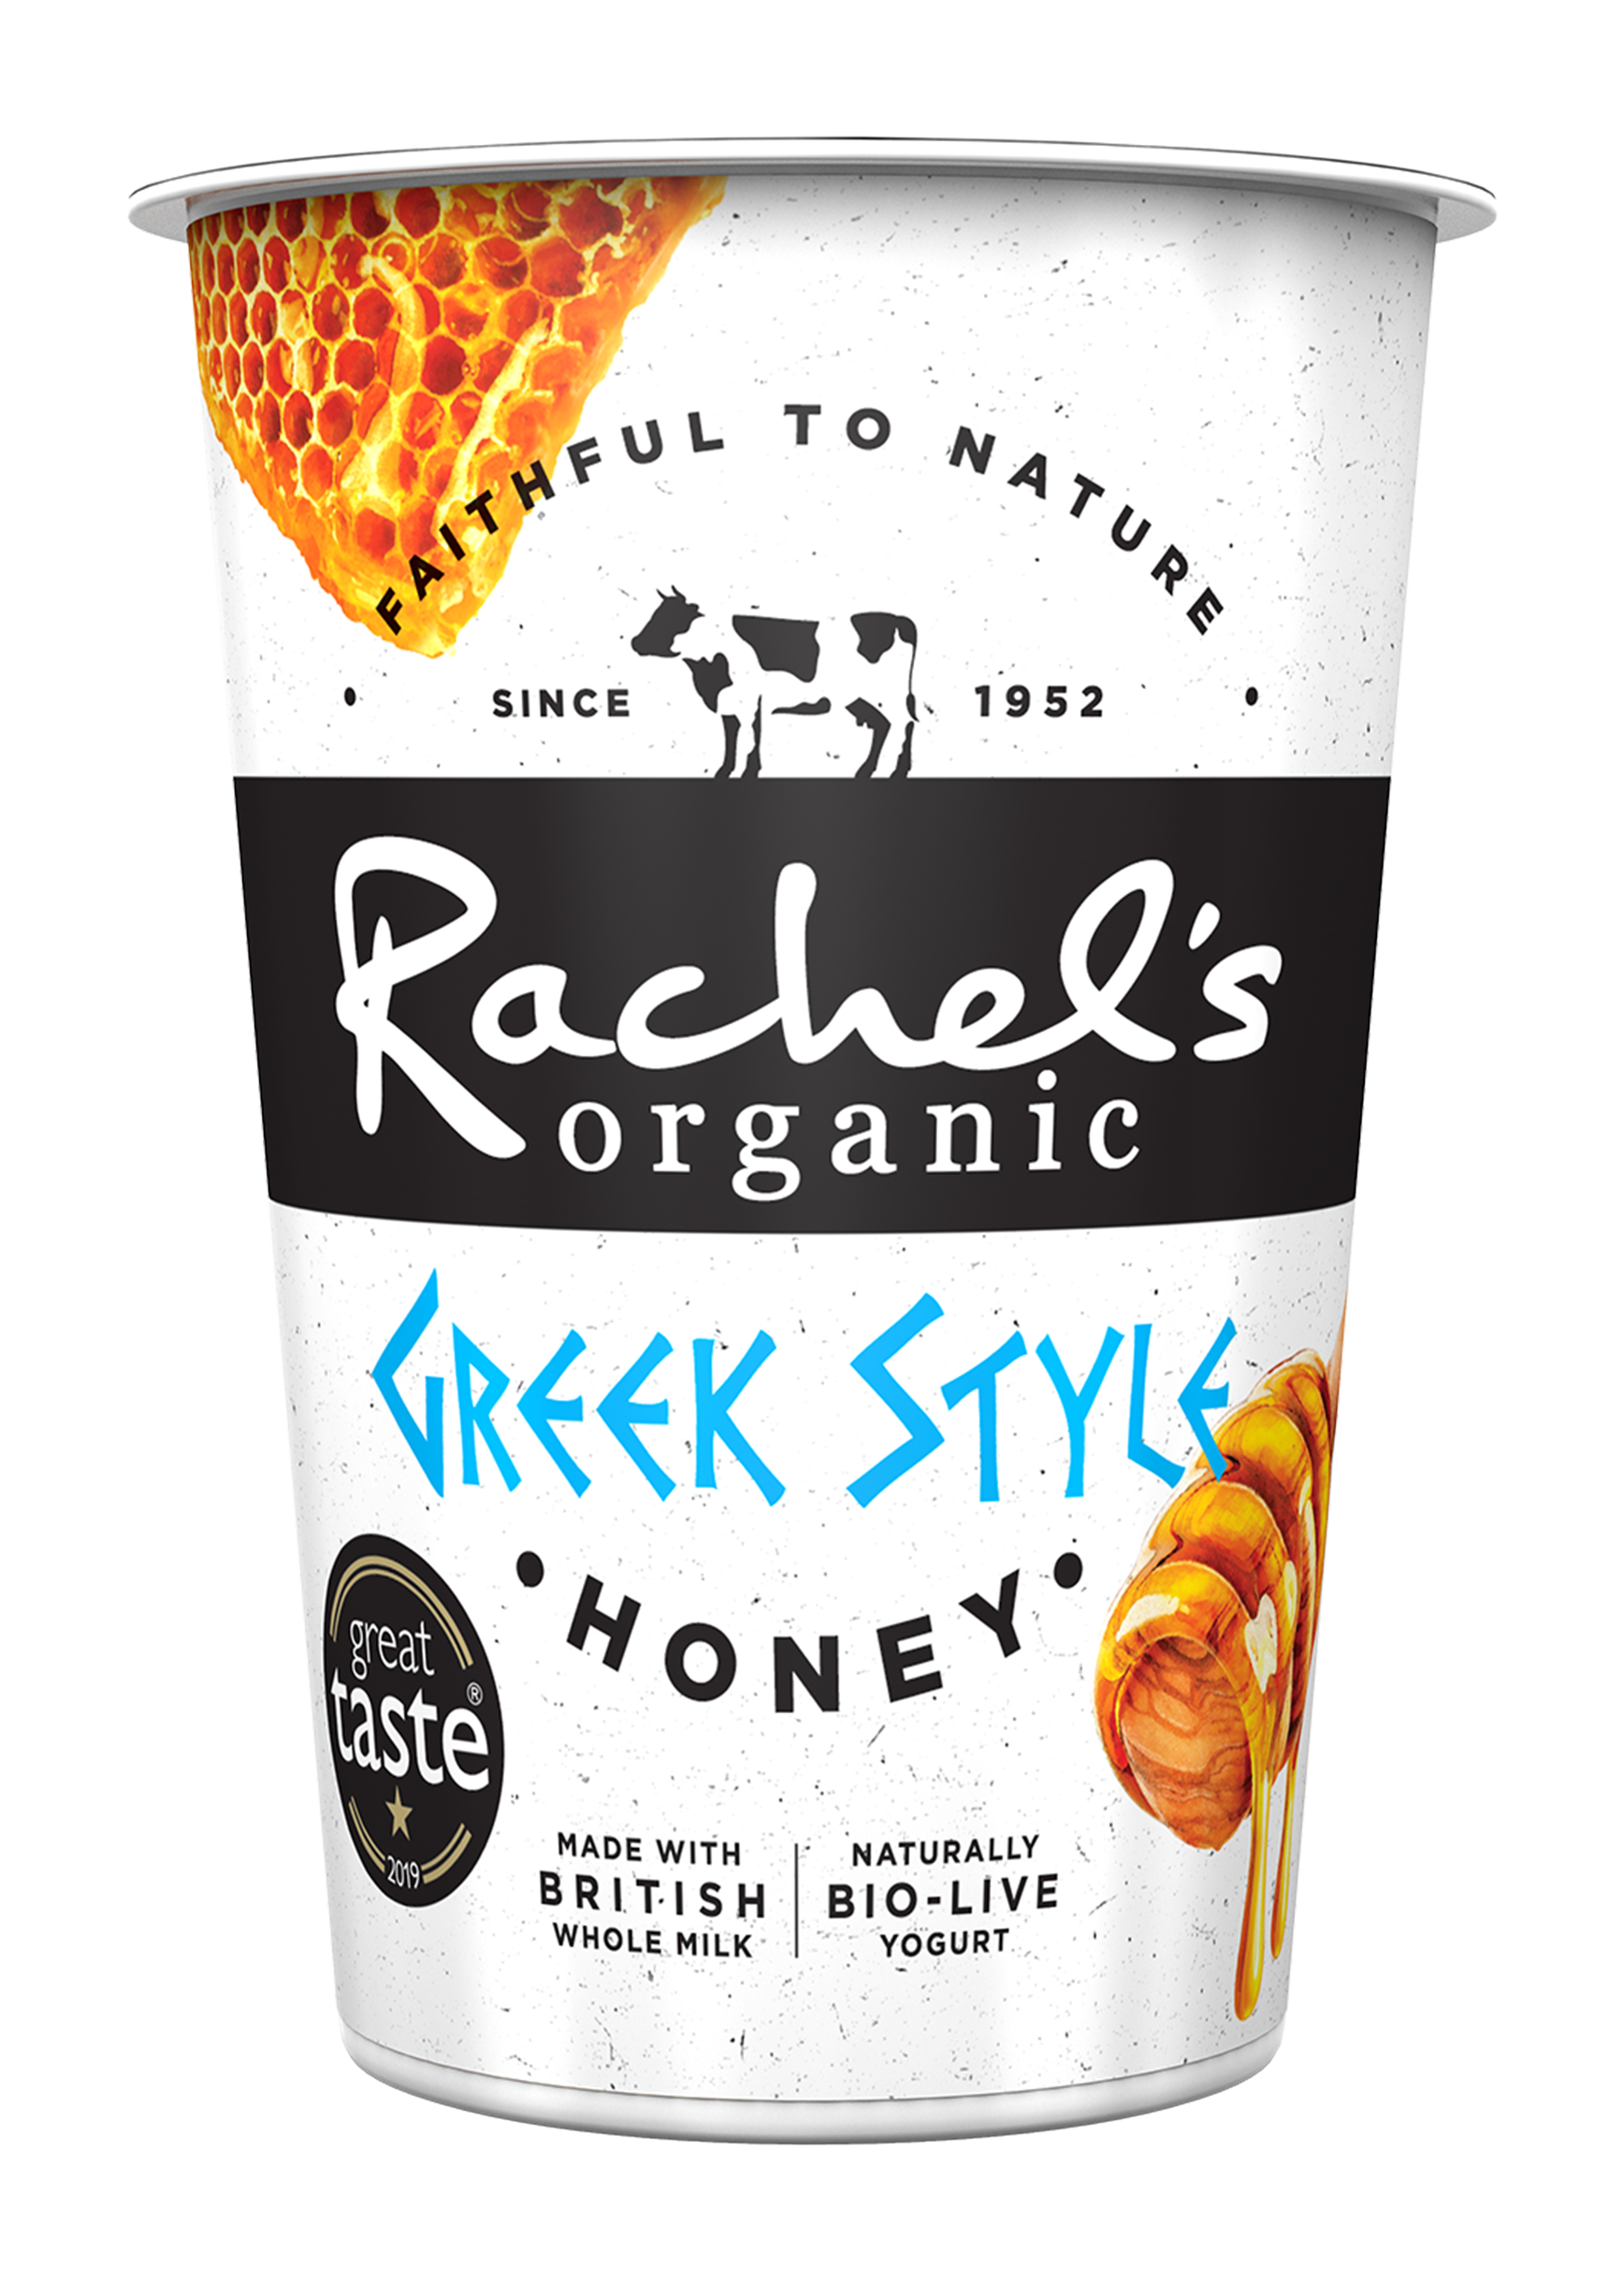 https://www.rachelsorganic.co.uk/wp-content/uploads/2020/02/5021638190005-3D-RACHELS-450G-POT-GREEK-STYLE-HONEY-GTA.png